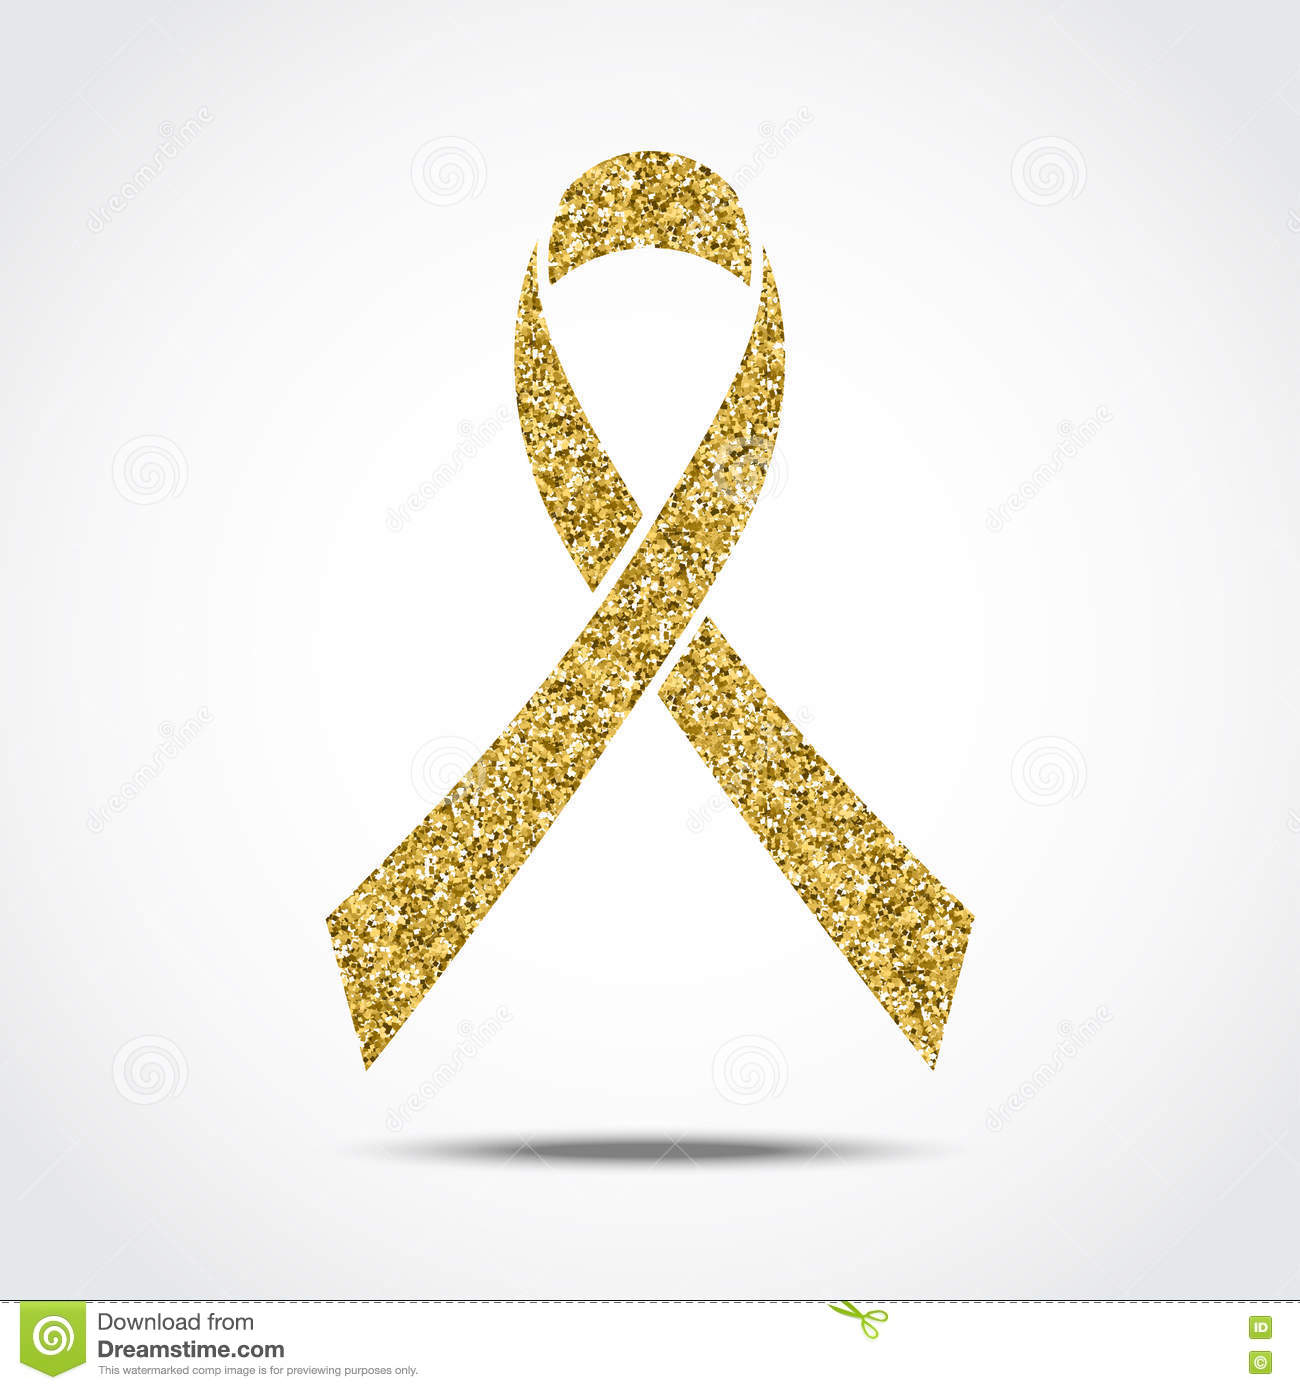 gold glitter awareness ribbon symbol of childhood cancer Childhood Cancer Wallpaper Yellow and Pink Cancer Ribbon